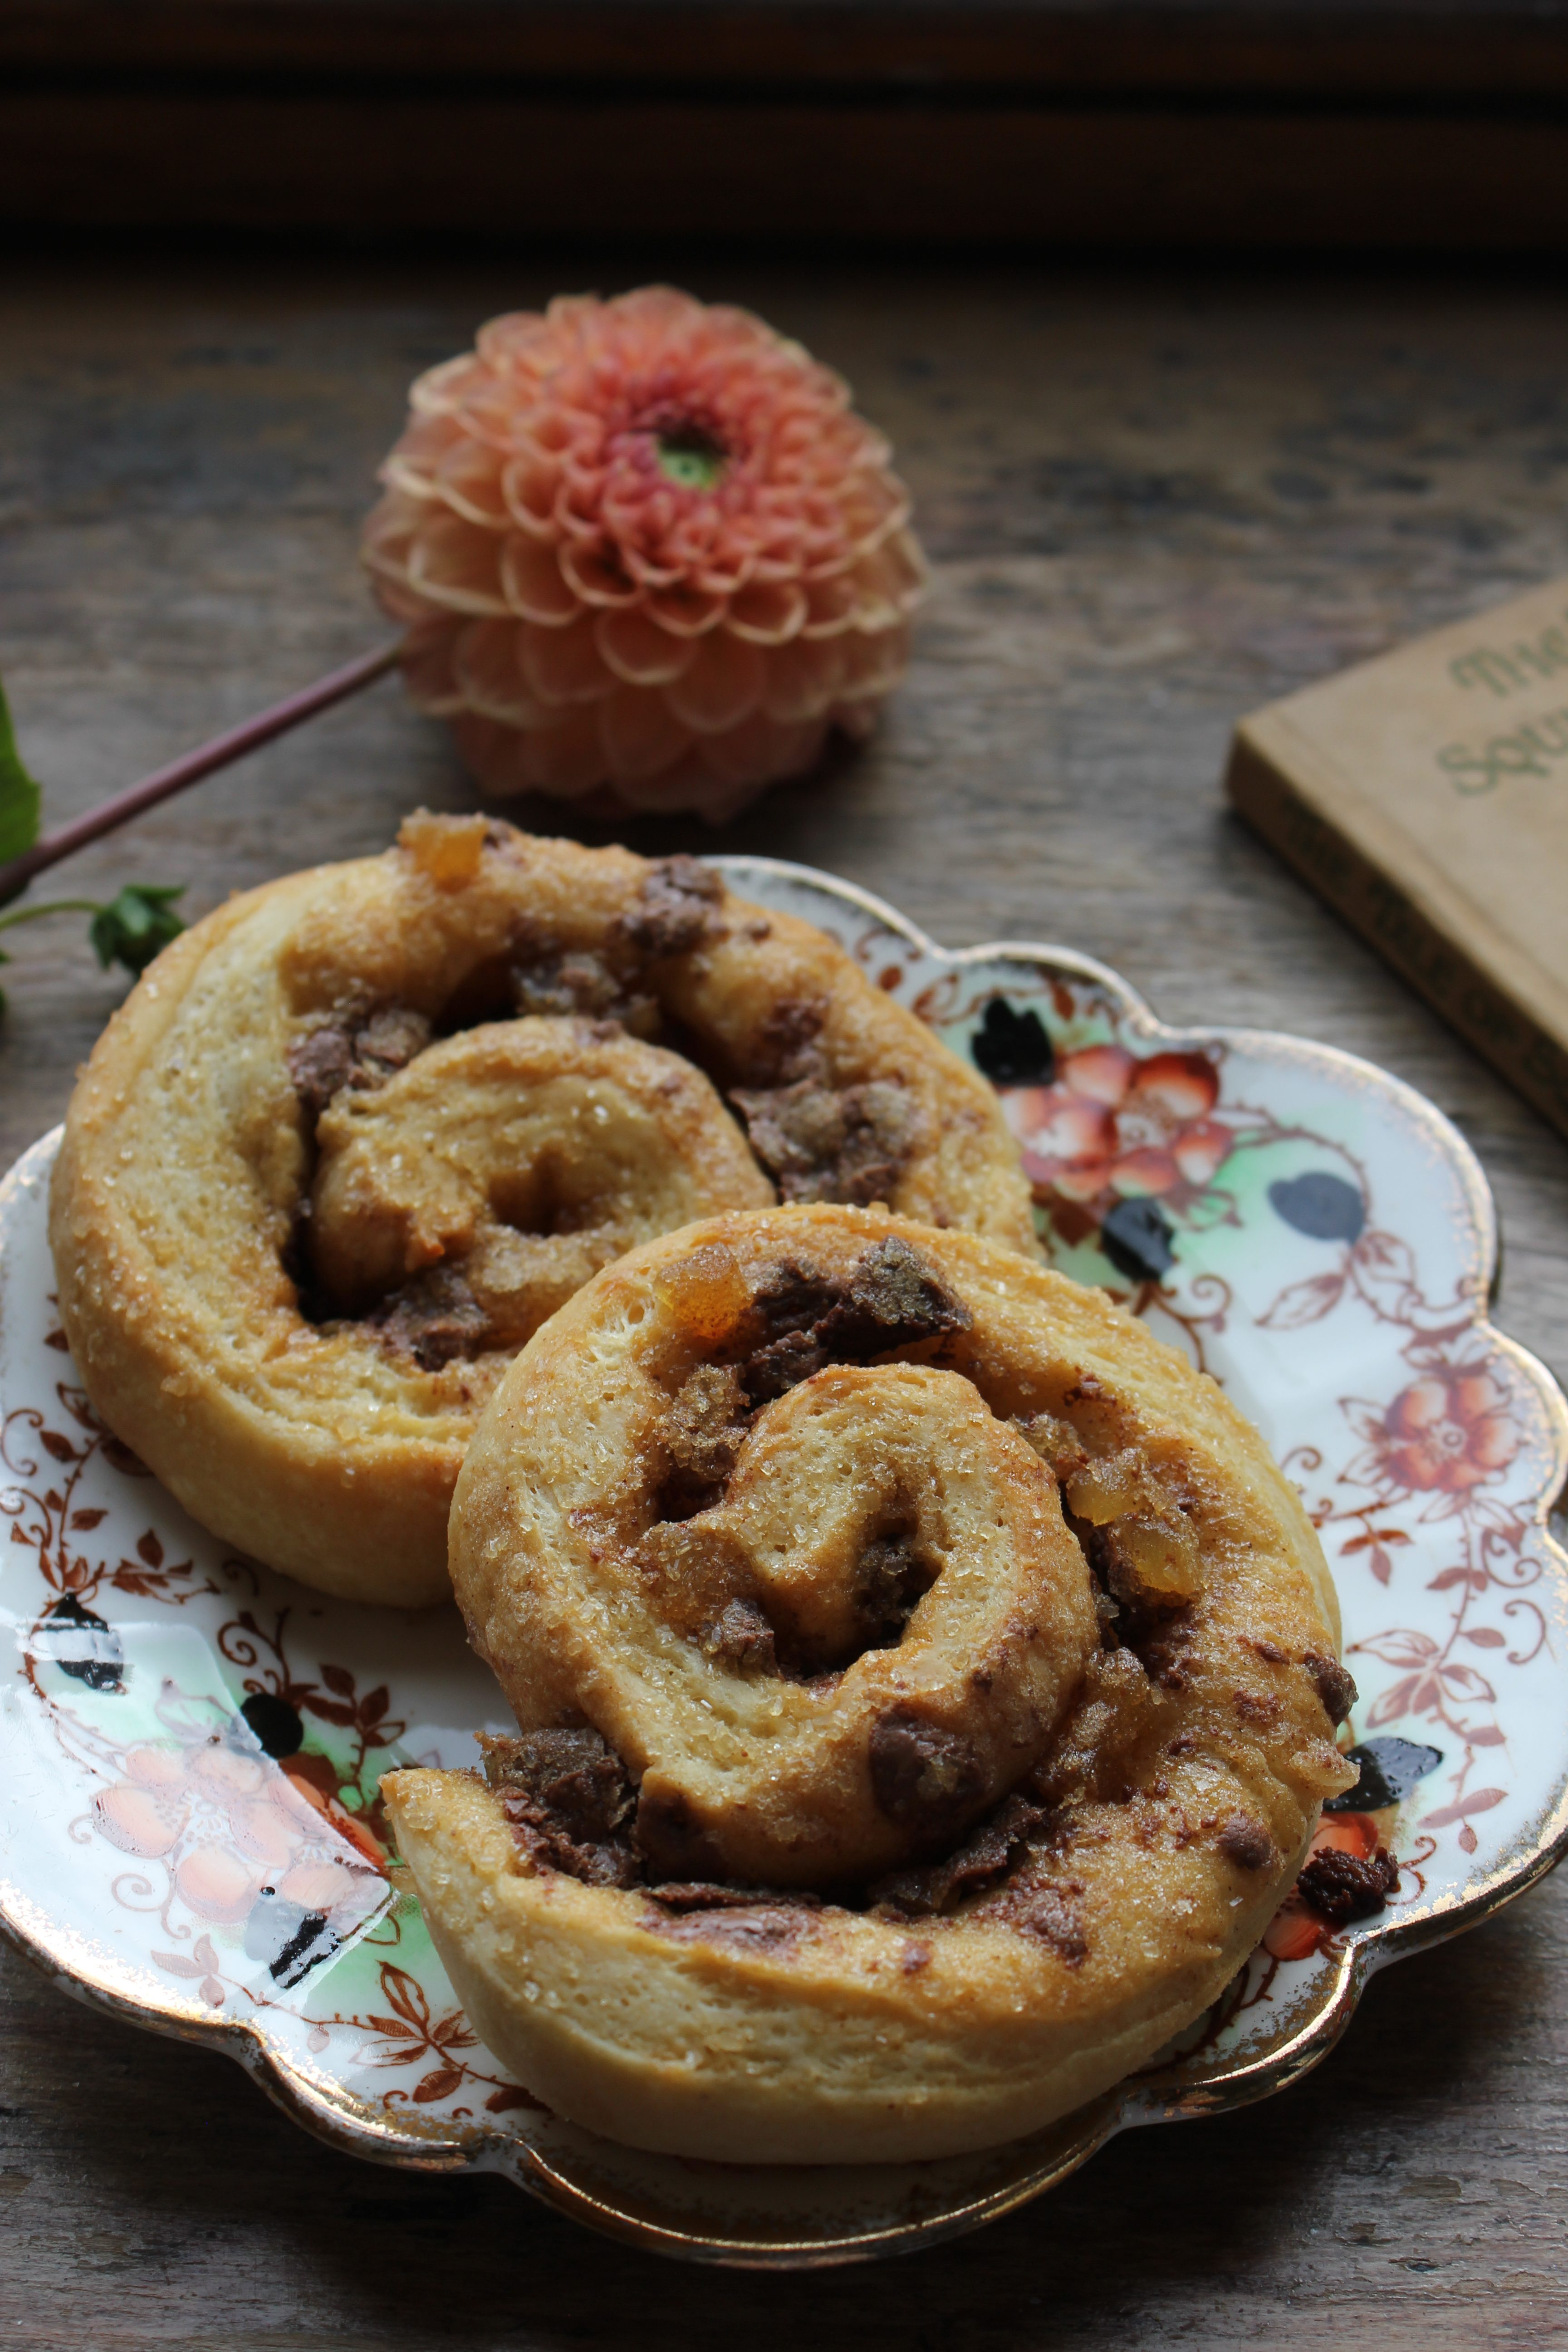 Ginger and Chocolate Buns